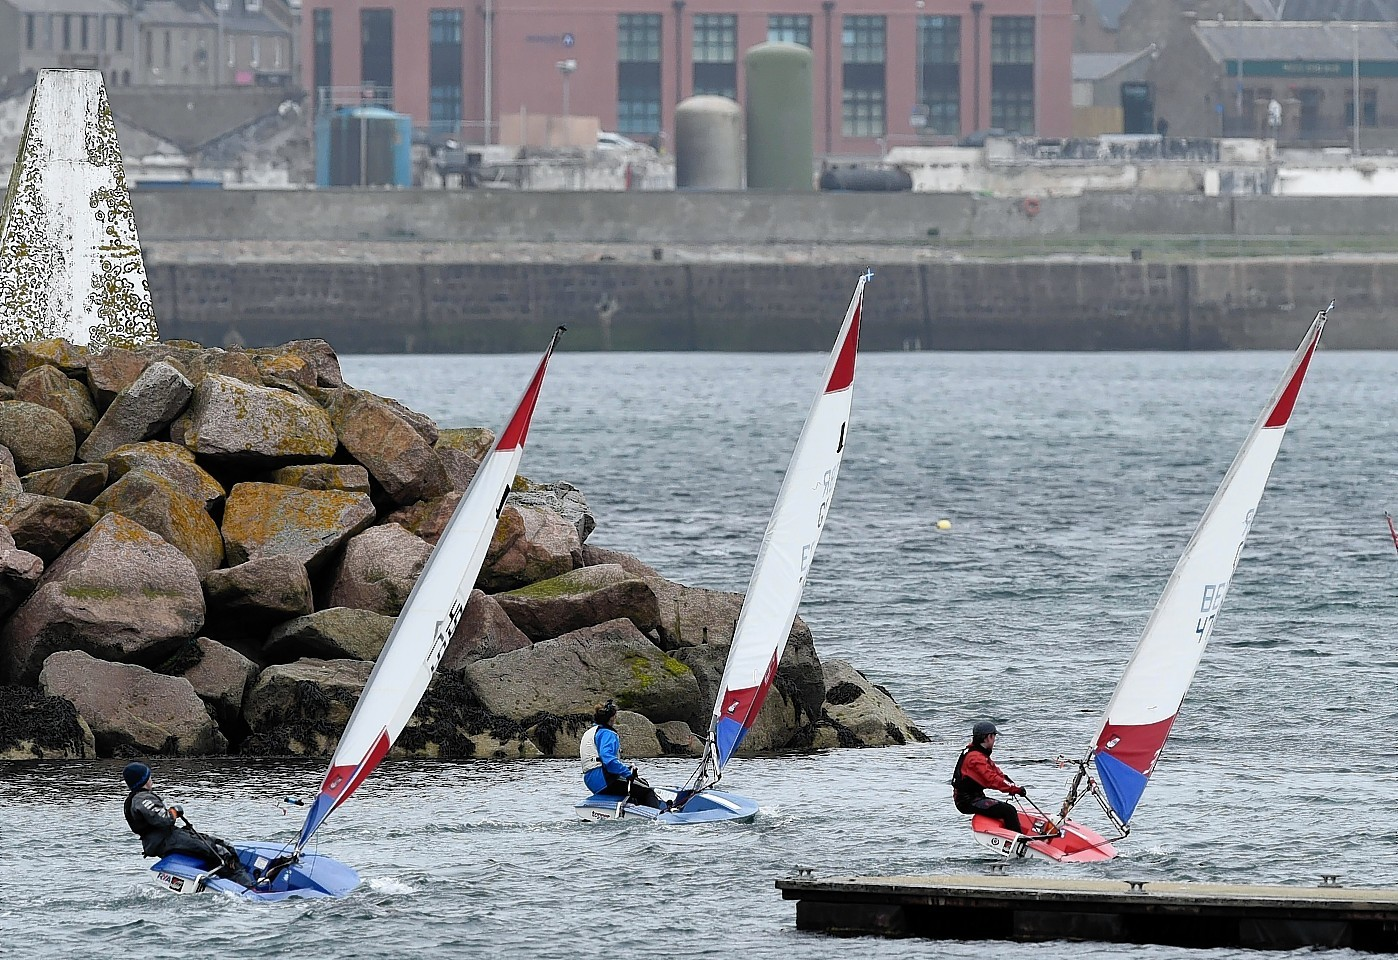 Yachts racing in Peterhead